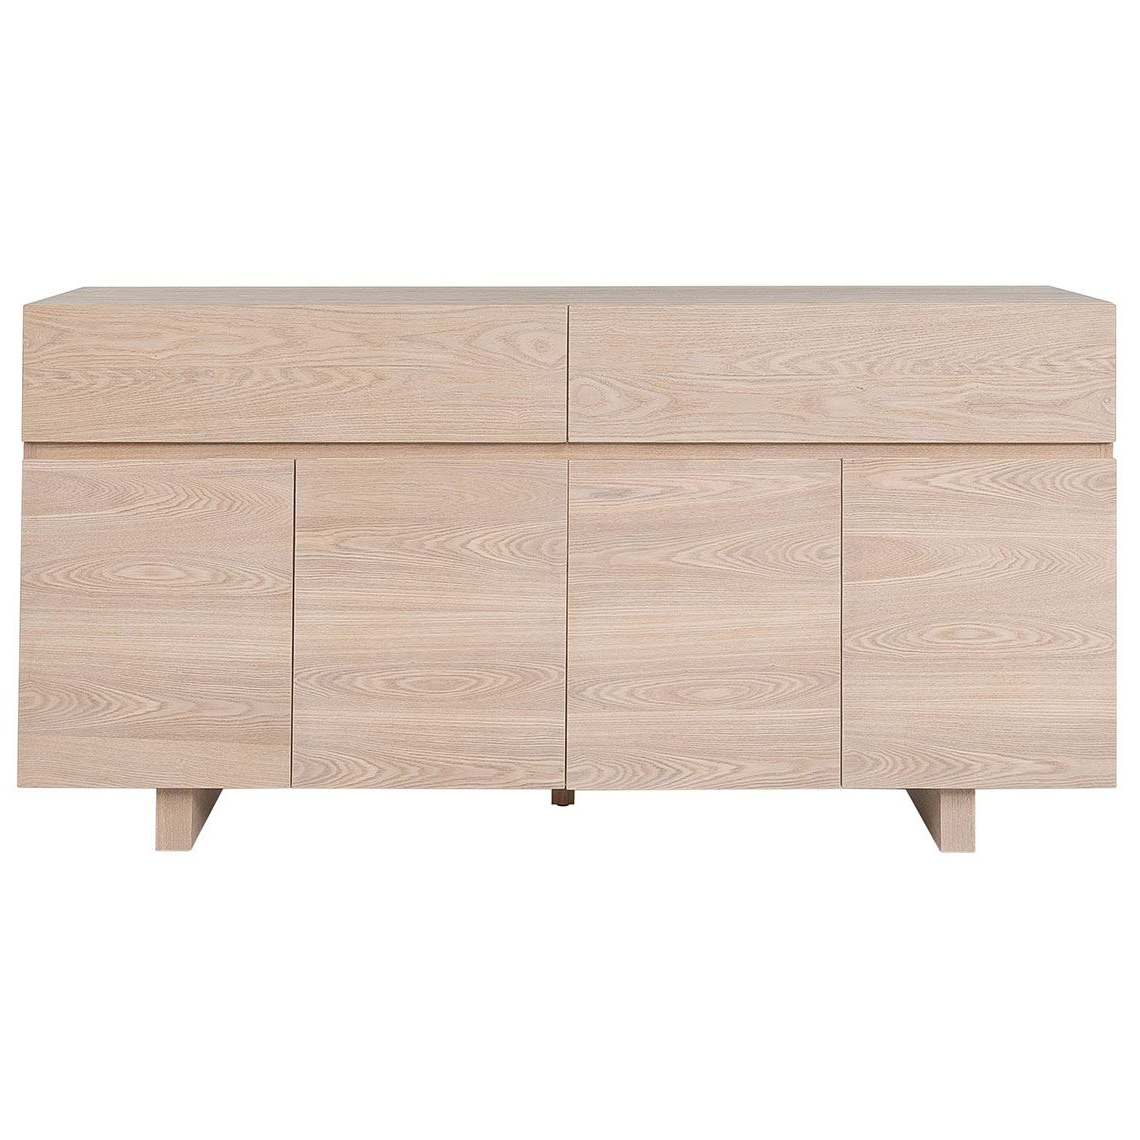 Well Known 4 Door 3 Drawer White Wash Sideboards With Regard To Freedom Furniture And Homewares (Gallery 17 of 20)